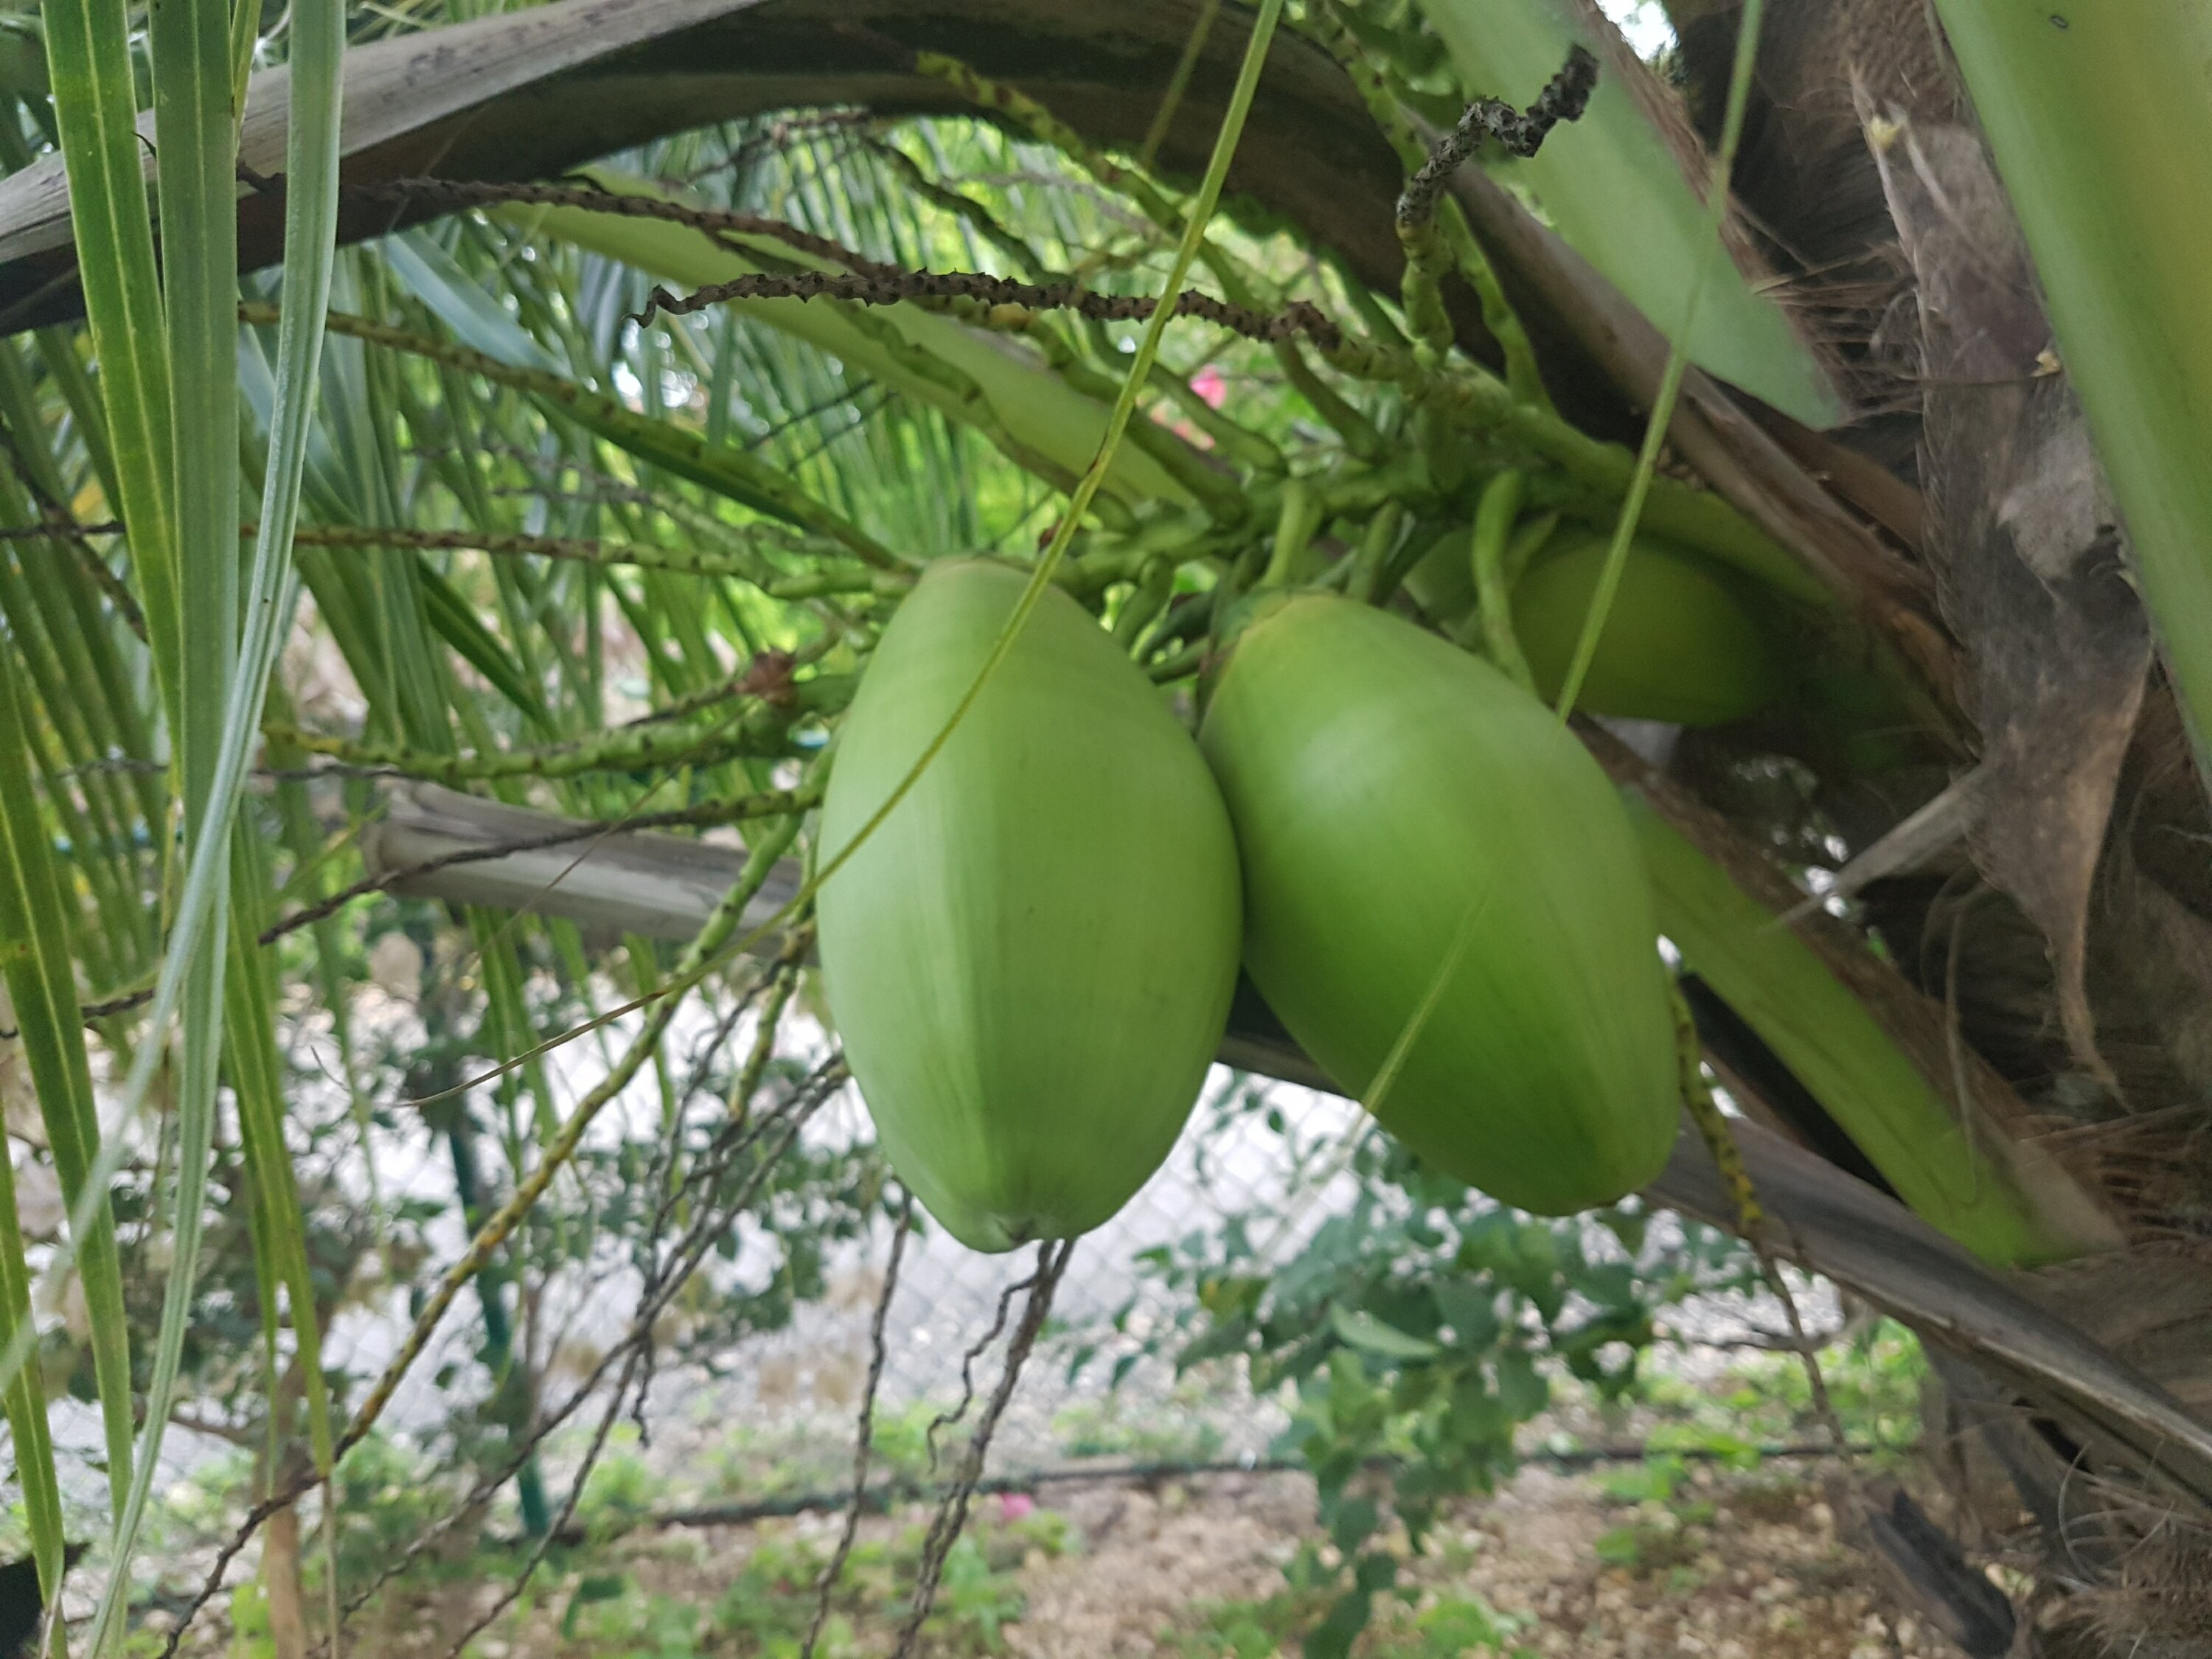 Coconuts on a tree I grew from the seed